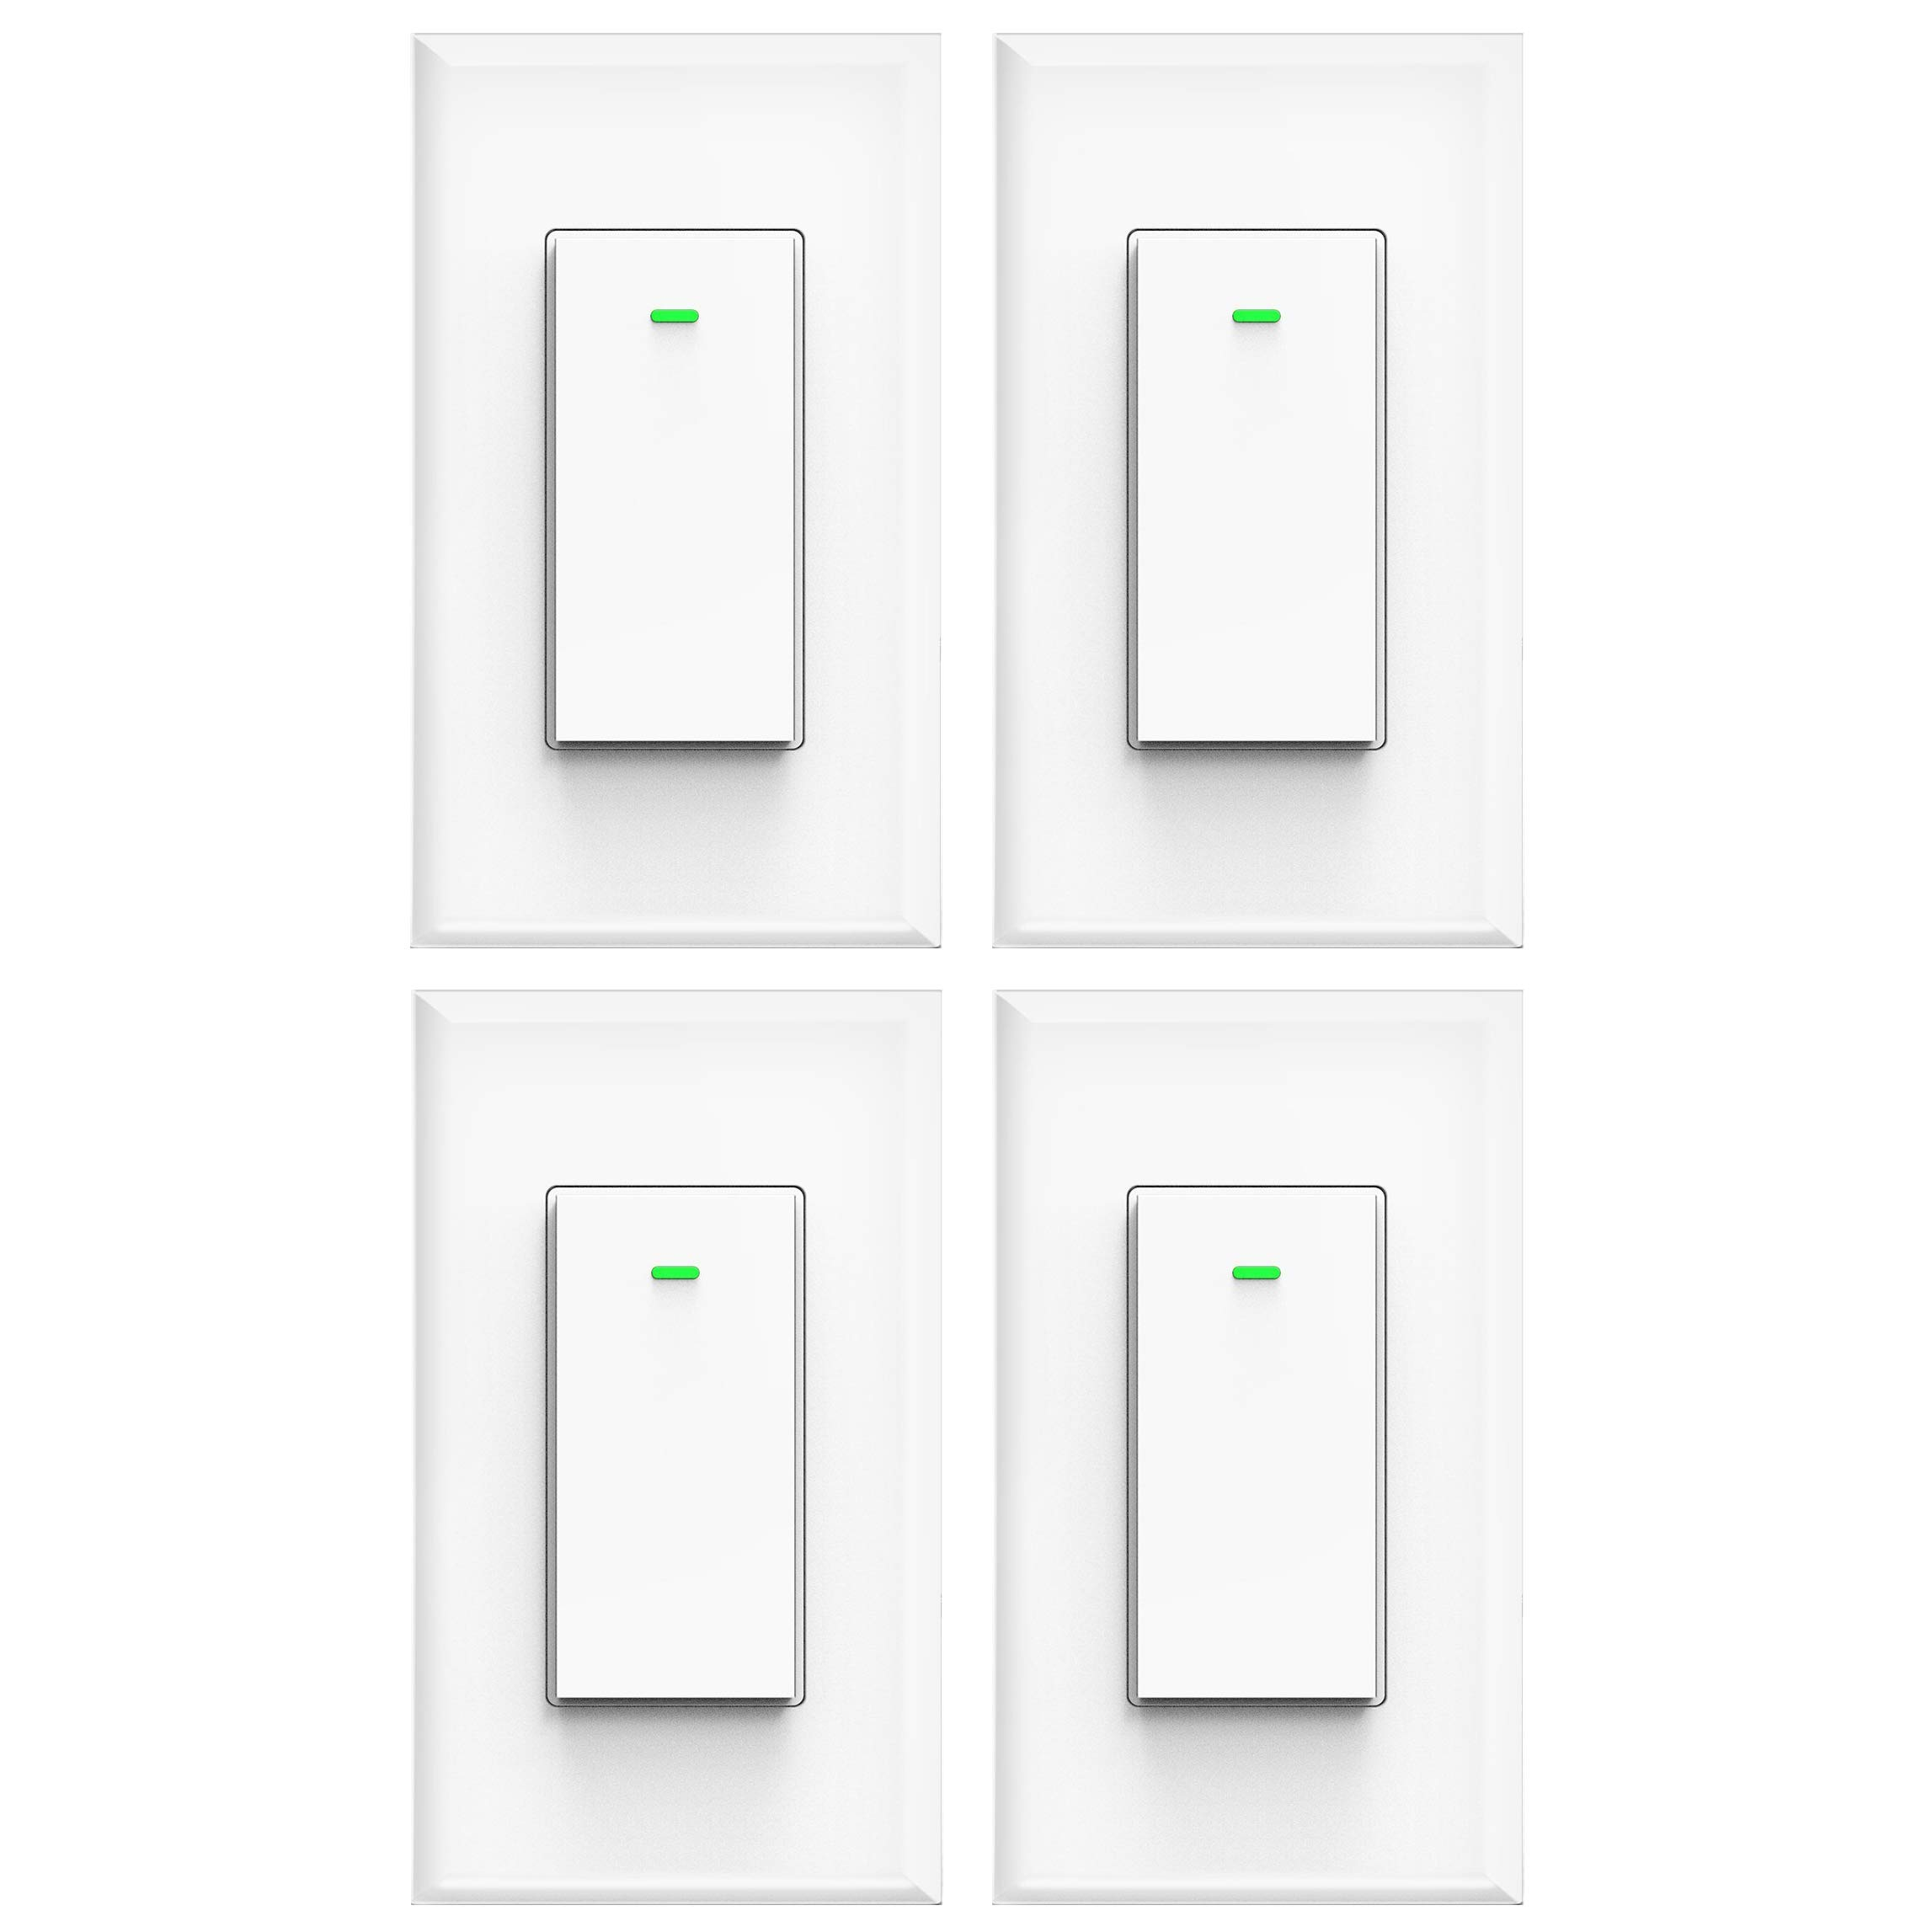 Smart light switch, works with Alexa, compatible with google assistant, IFTTT, No Hub Required, Smart home WiFi Wireless, Suit for 1/2/3/4 Gang Switch Box, Neutral Wire Required, White Micmi 4pack by micmi